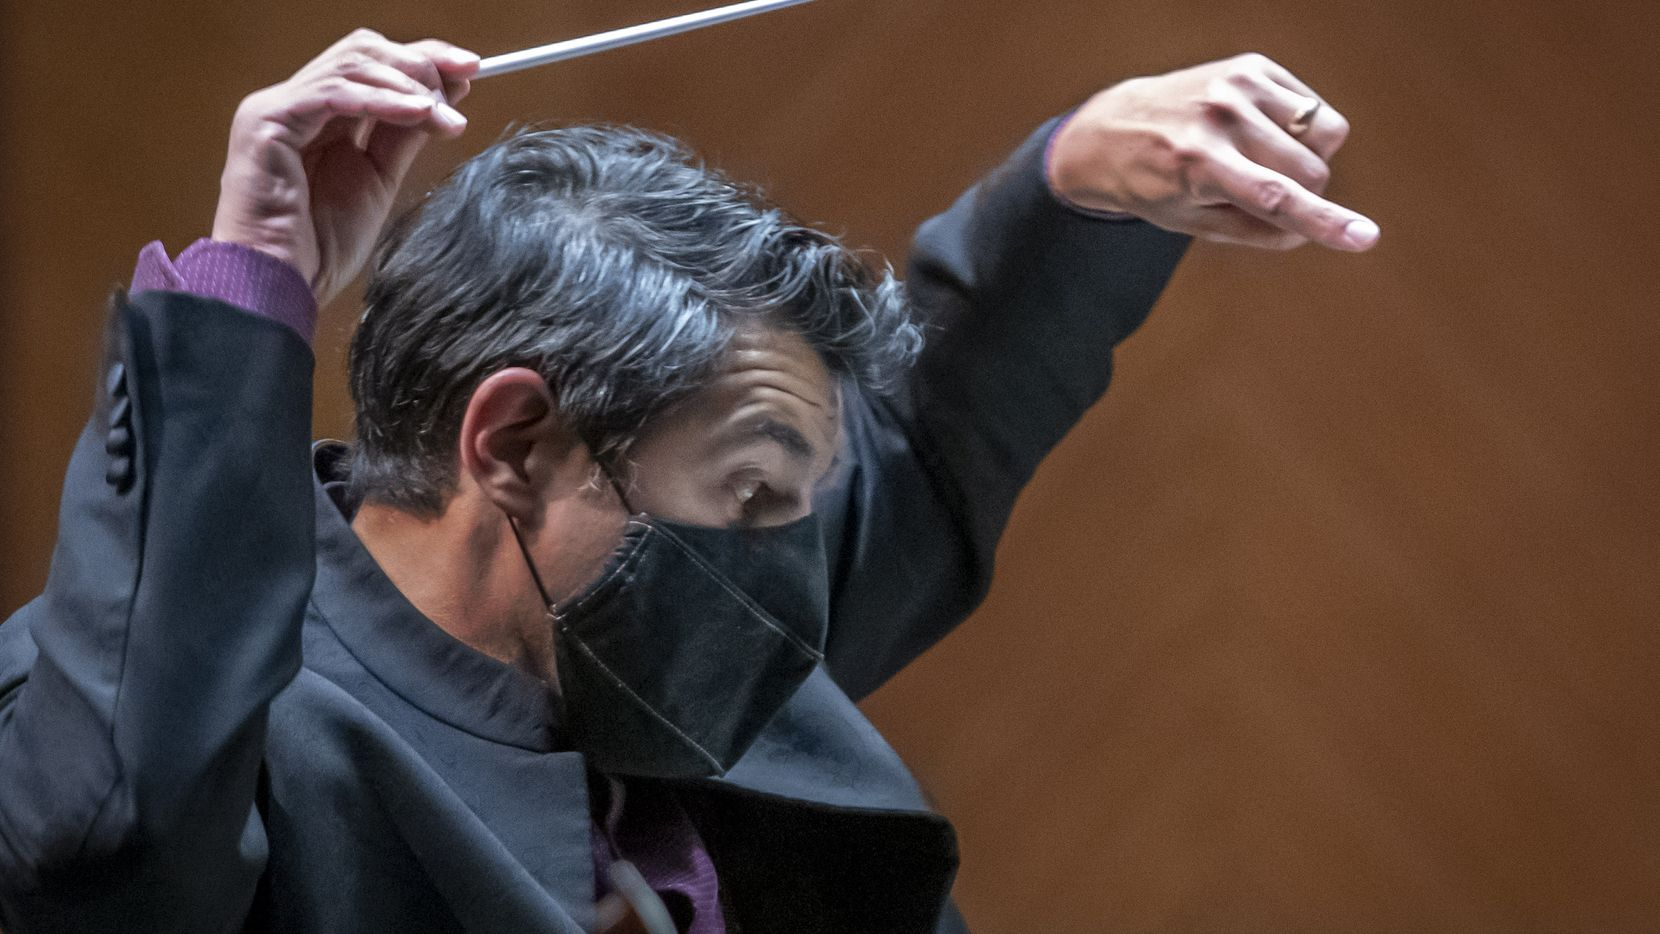 """Miguel Harth-Bedoya conducts the Fort Worth Symphony Orchestra in the world premiere of Víctor Agudelo's """"Algo Va a Suceder"""" at Bass Performance Hall in Fort Worth on Oct. 8."""